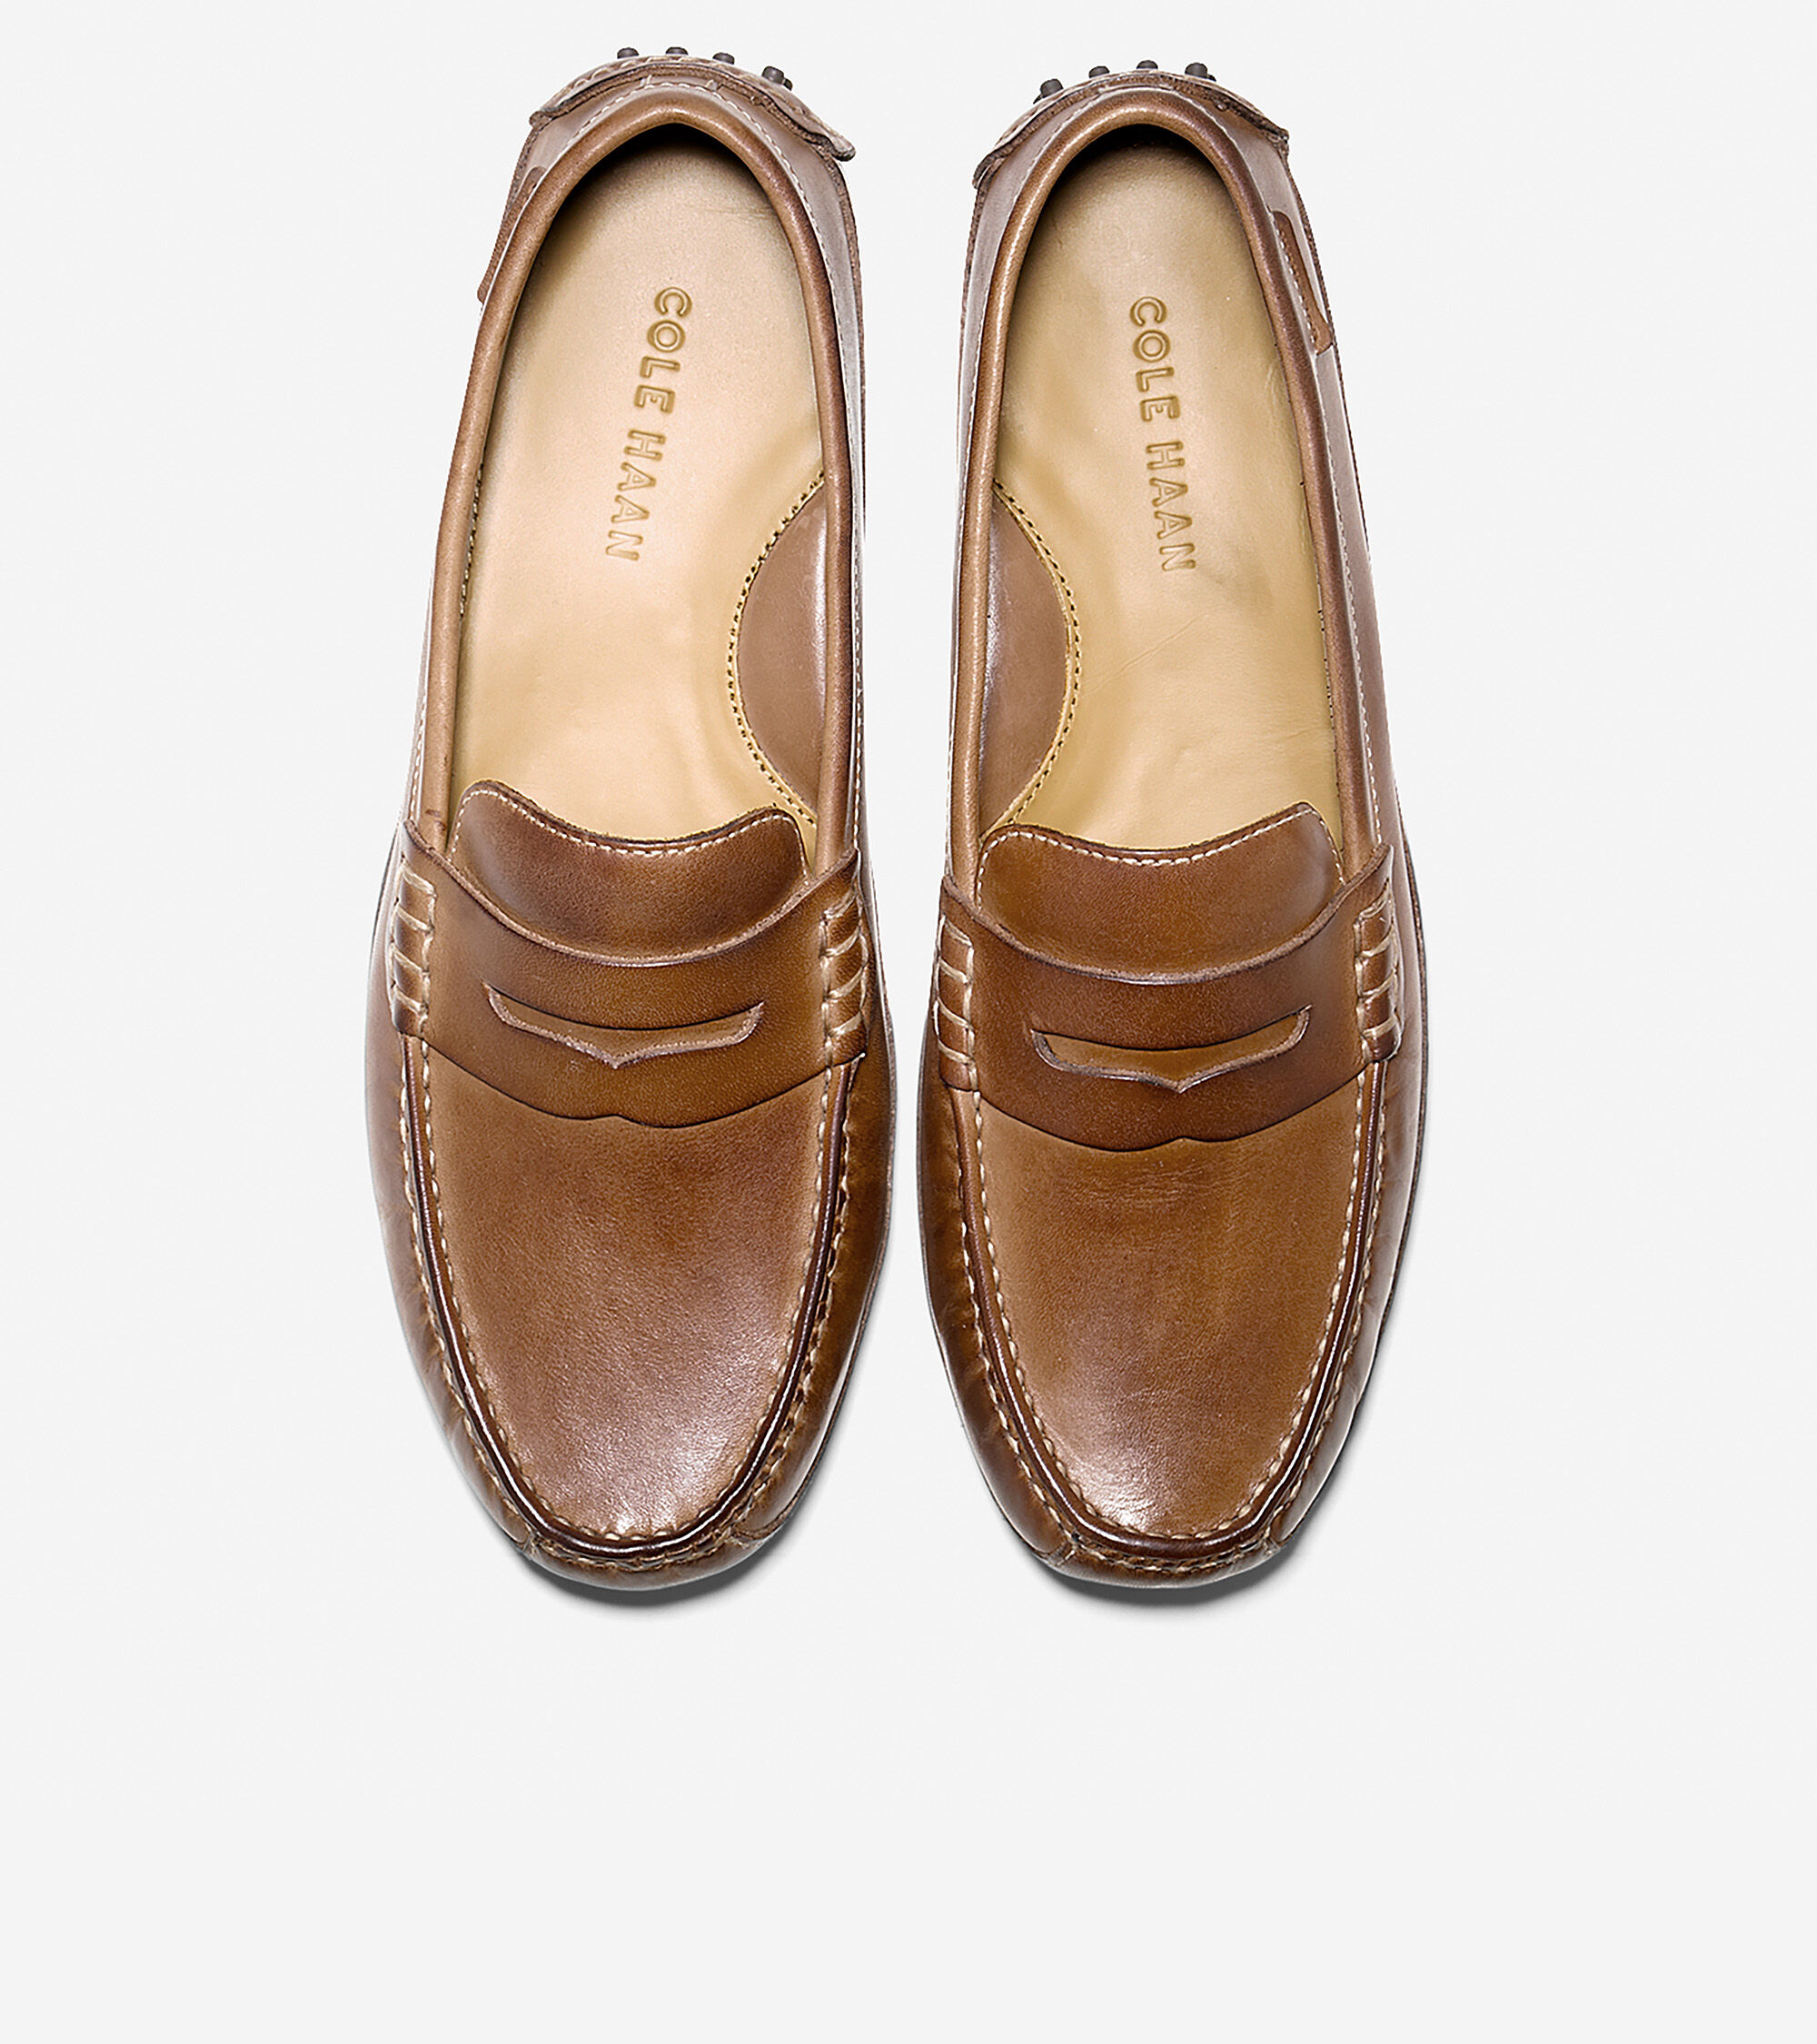 cole haan shoes lexington ky population 2018 by state 703267